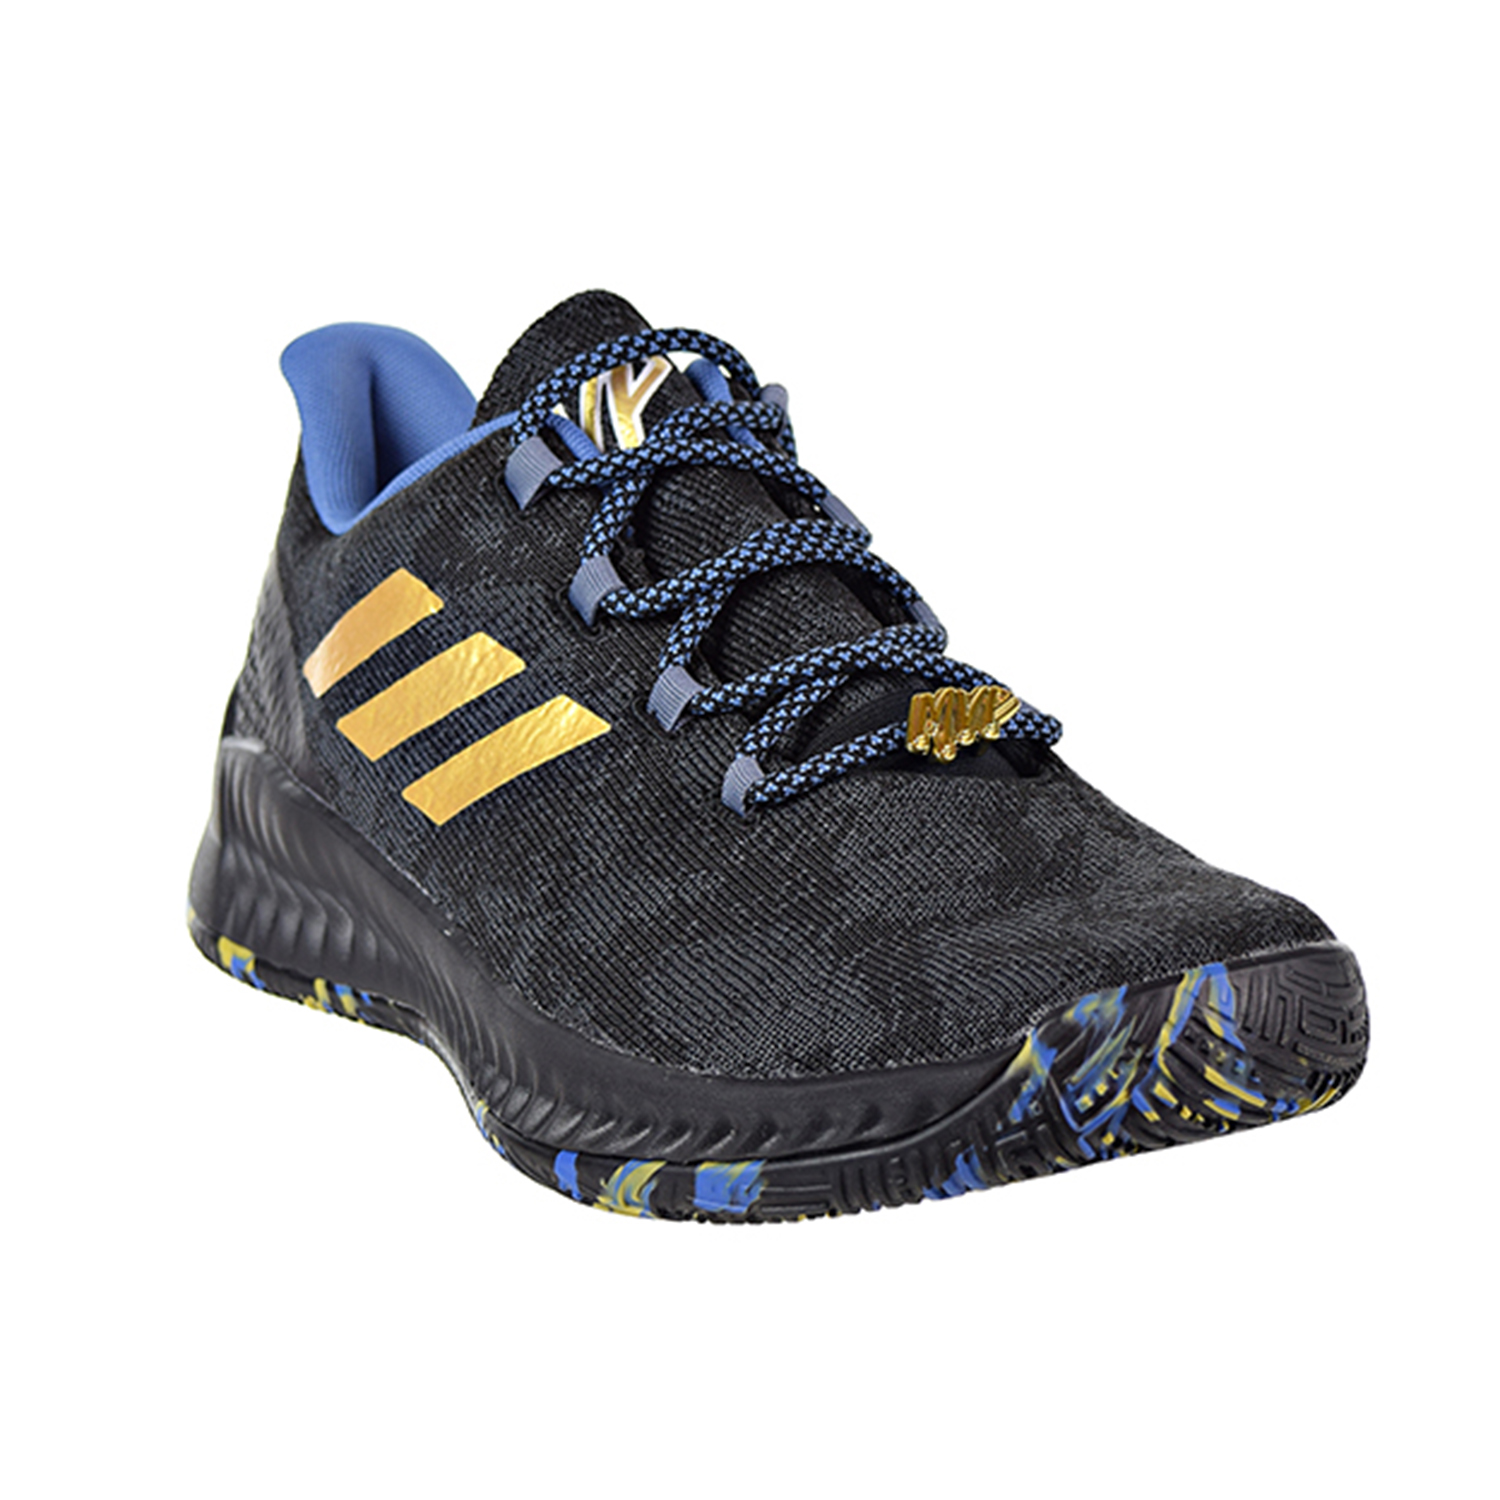 62db798859b2 Adidas Harden B E X MVP Men s Shoes Core Black Metallic Gold Steel f36813